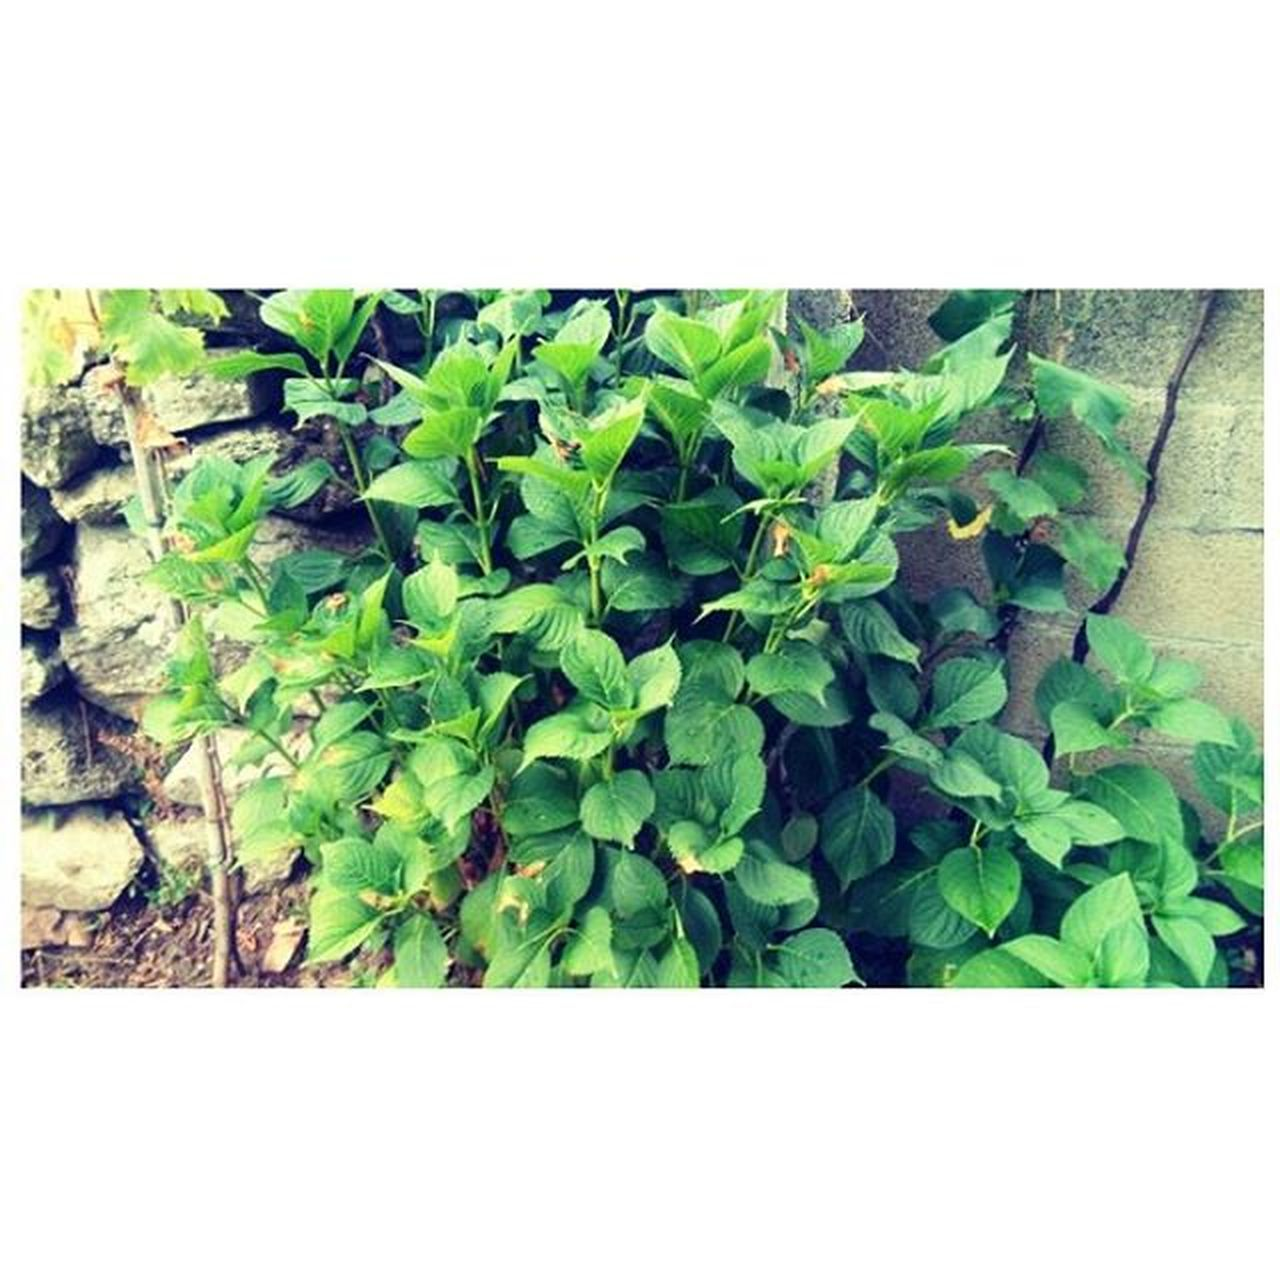 growth, plant, leaf, nature, green color, outdoors, day, no people, close-up